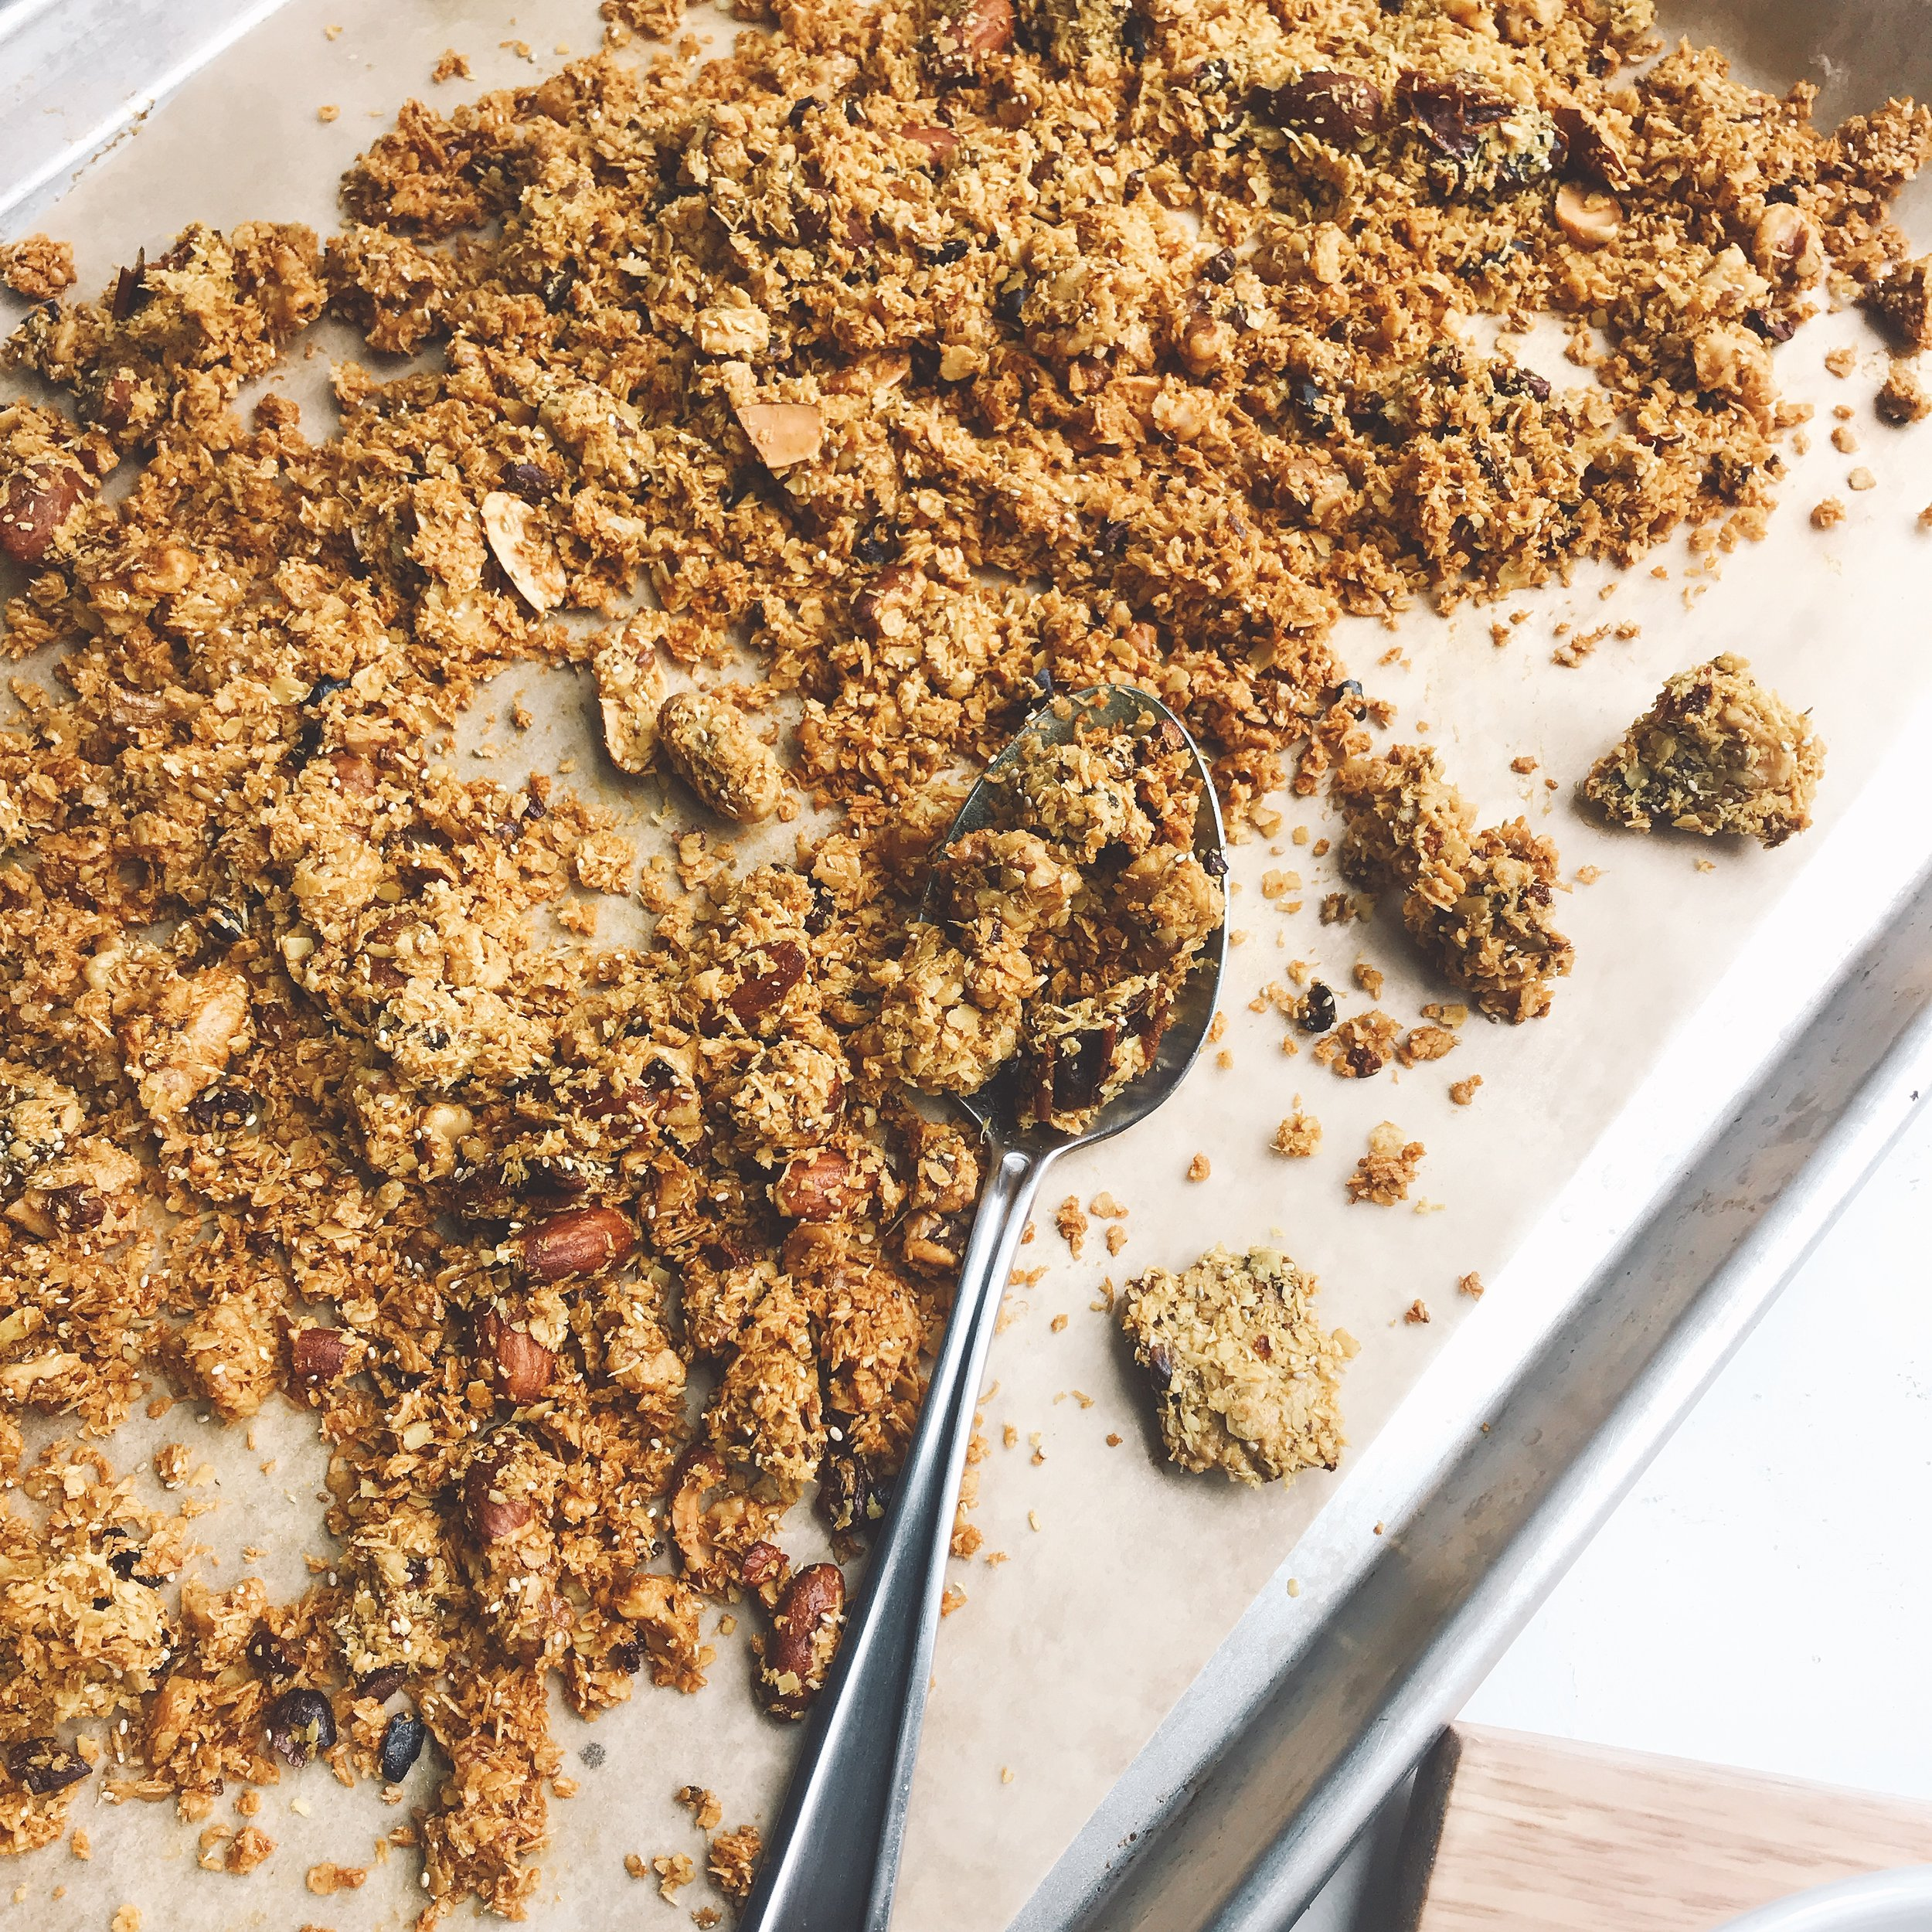 A sweet and savory granola mix that is low in sugar, crunchy, a simply one you can feel good about.